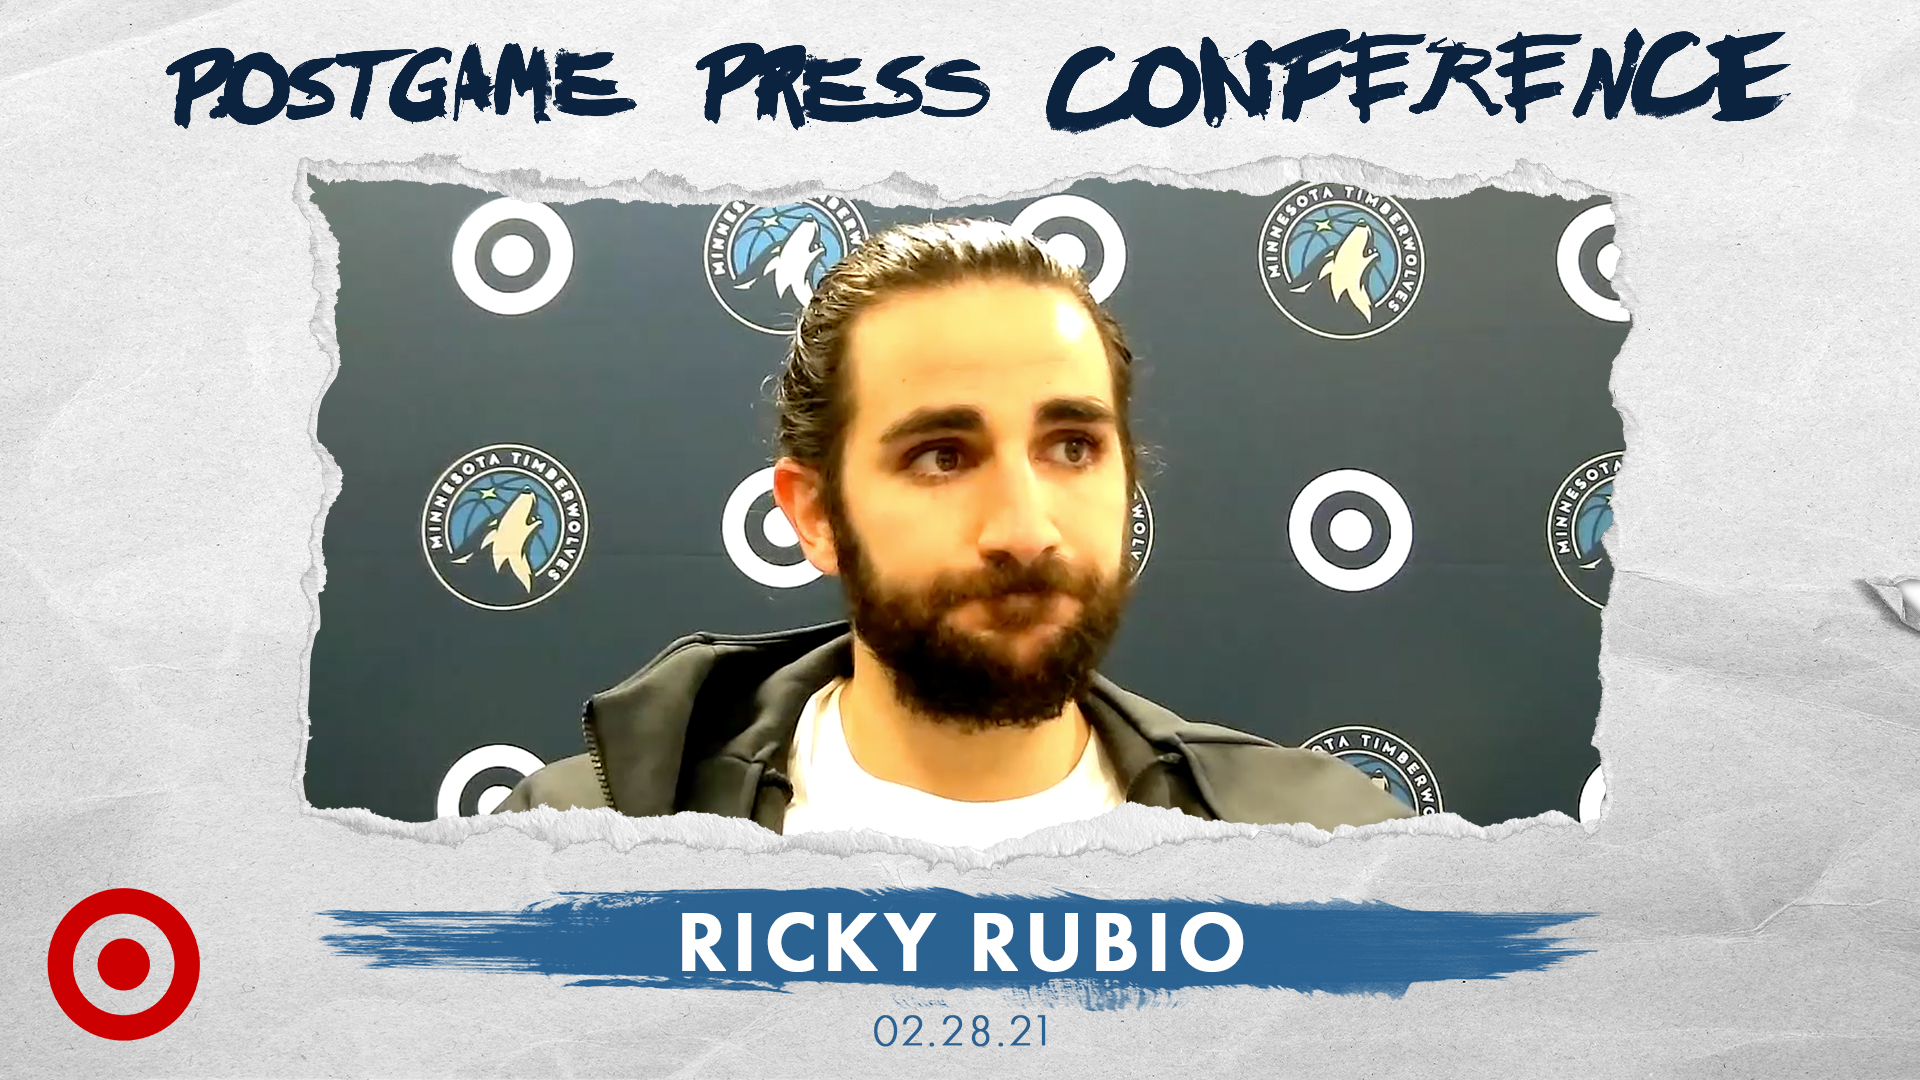 Ricky Rubio Postgame Press Conference - February 28, 2021